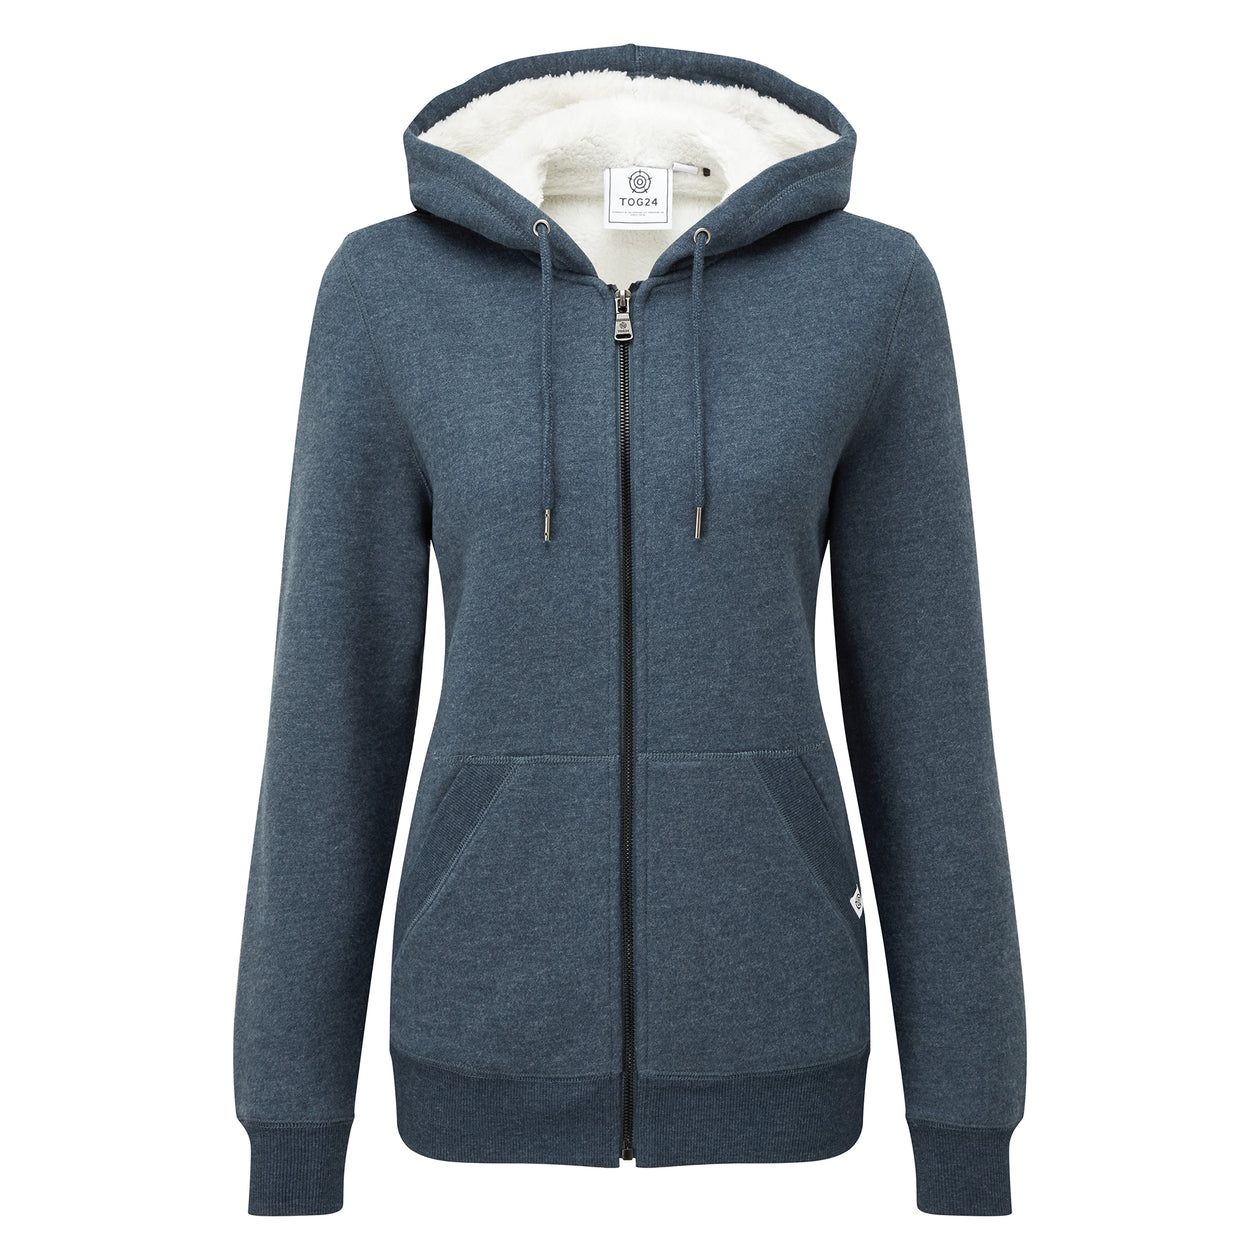 Ada Womens Zip Sherpa Hoody - Atlantic Blue Marl image 4